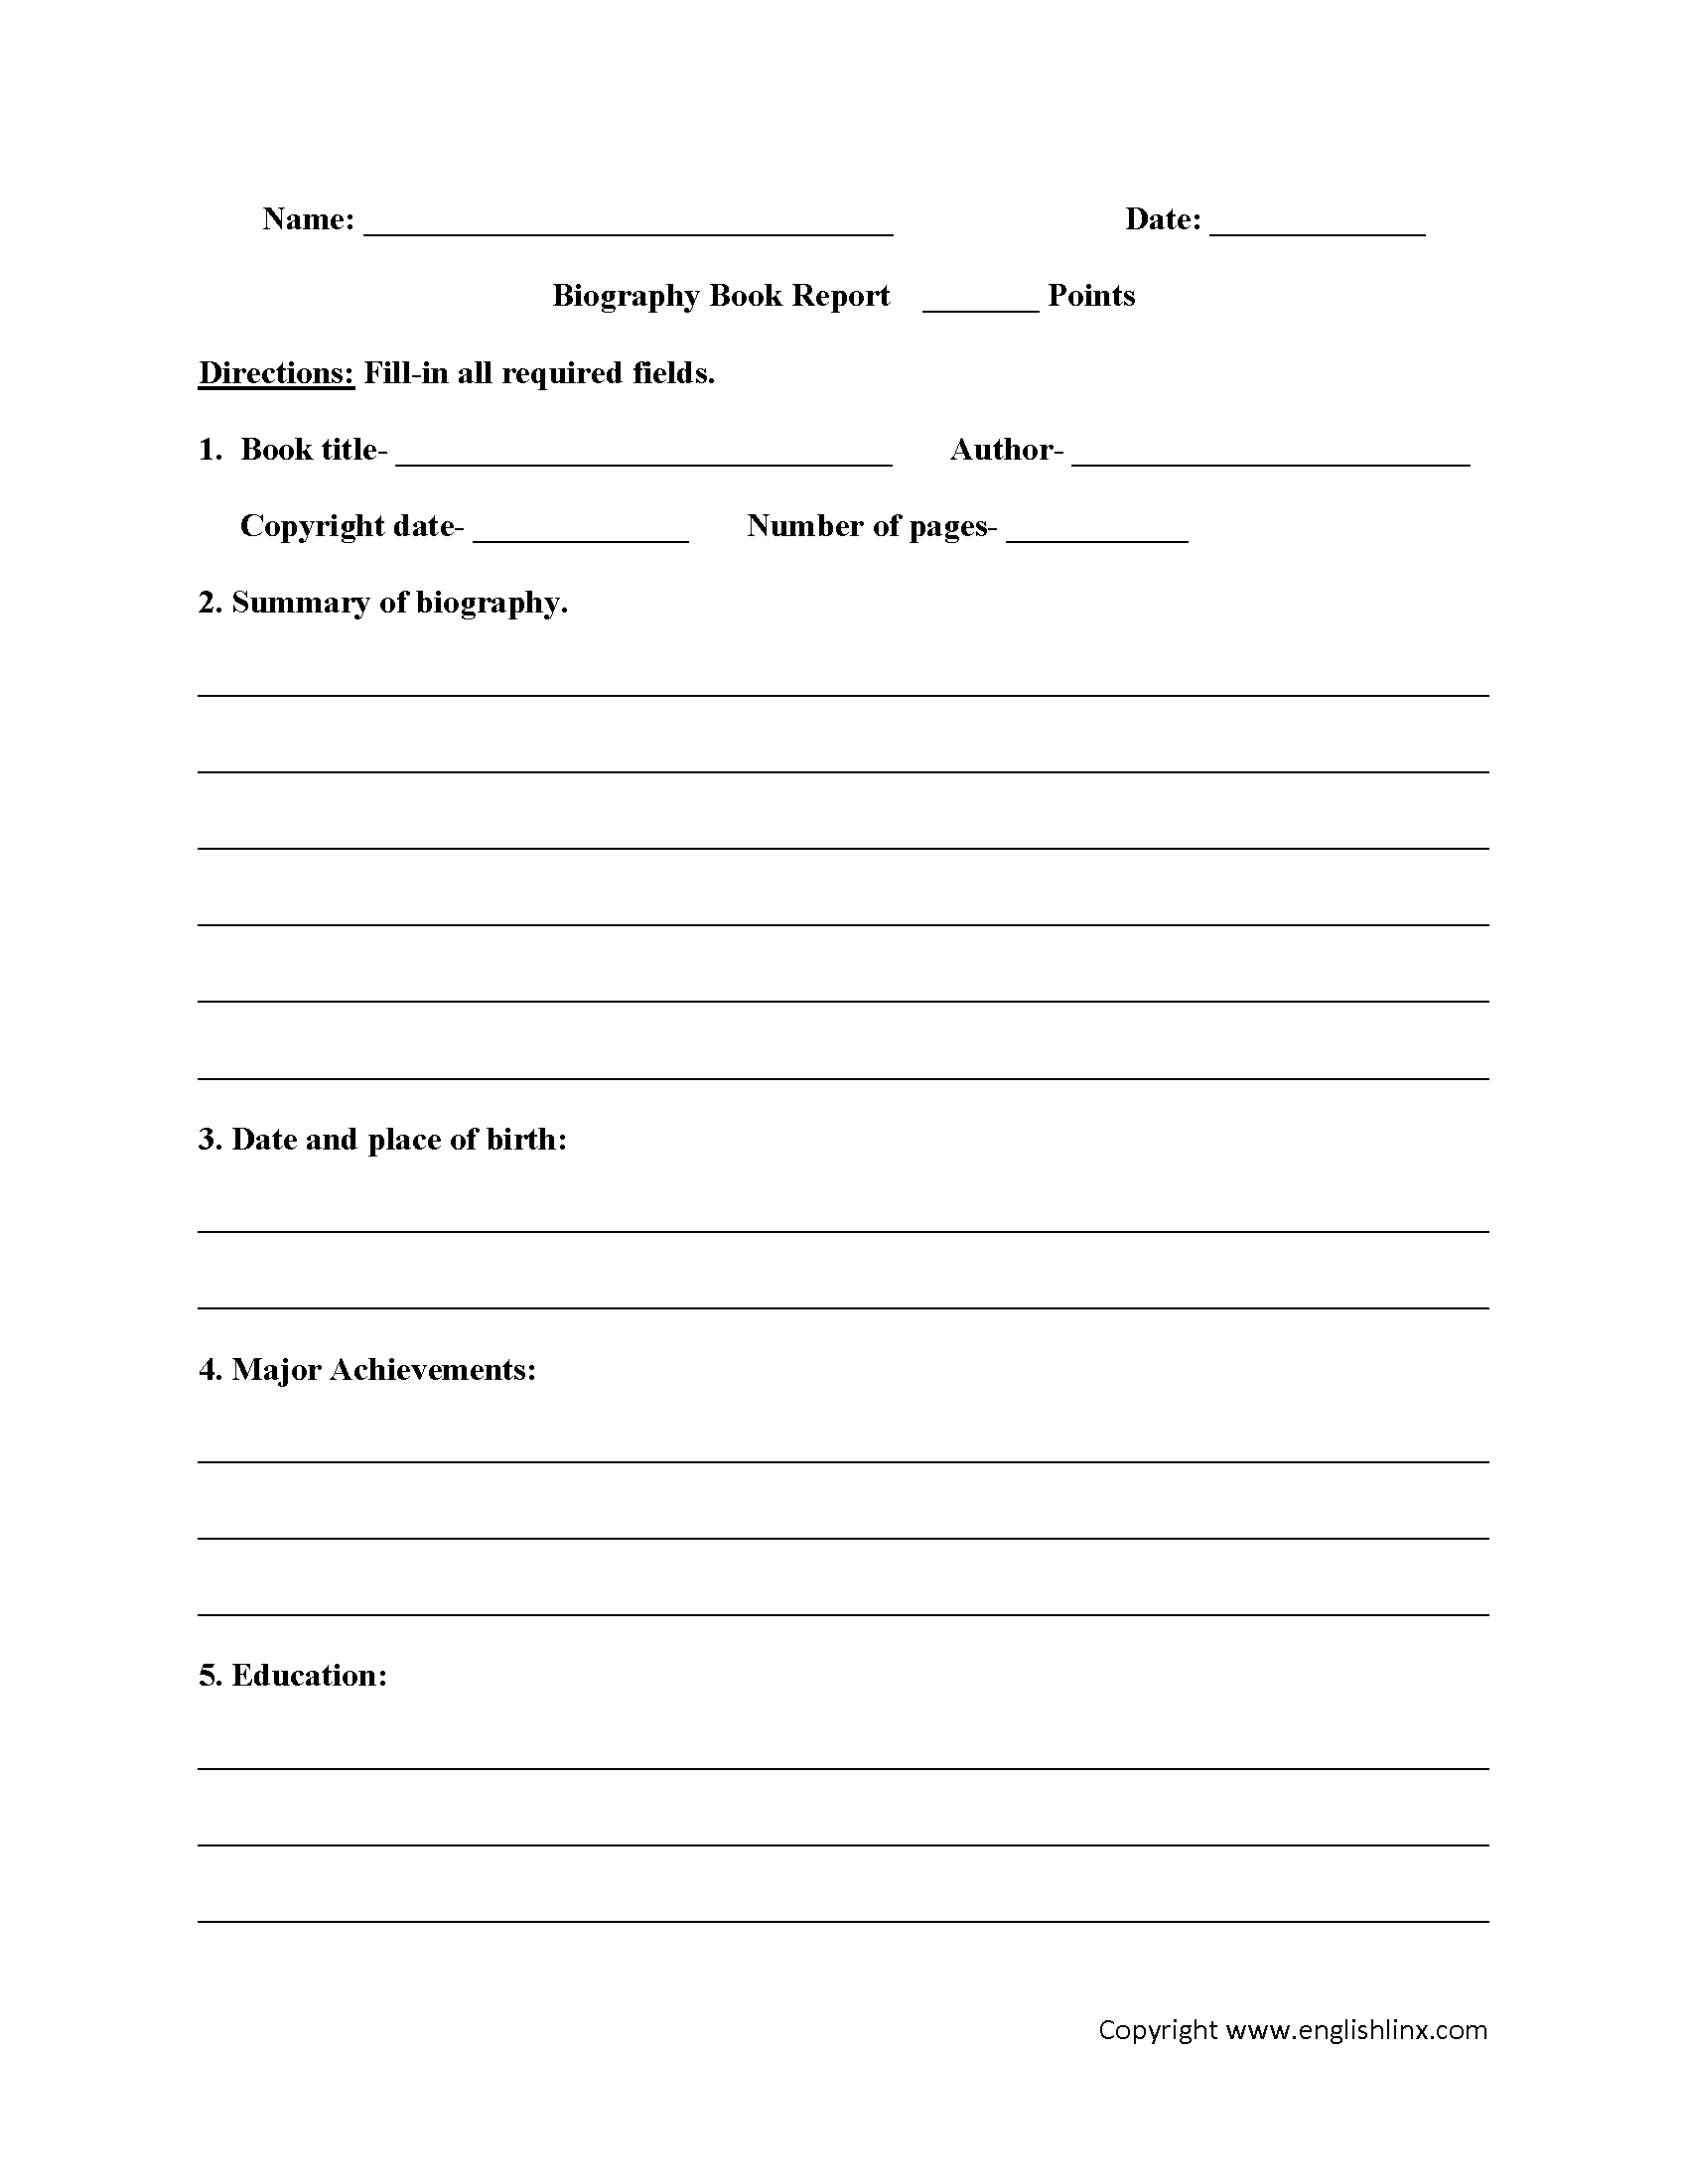 Biography Worksheet For 5th Grade